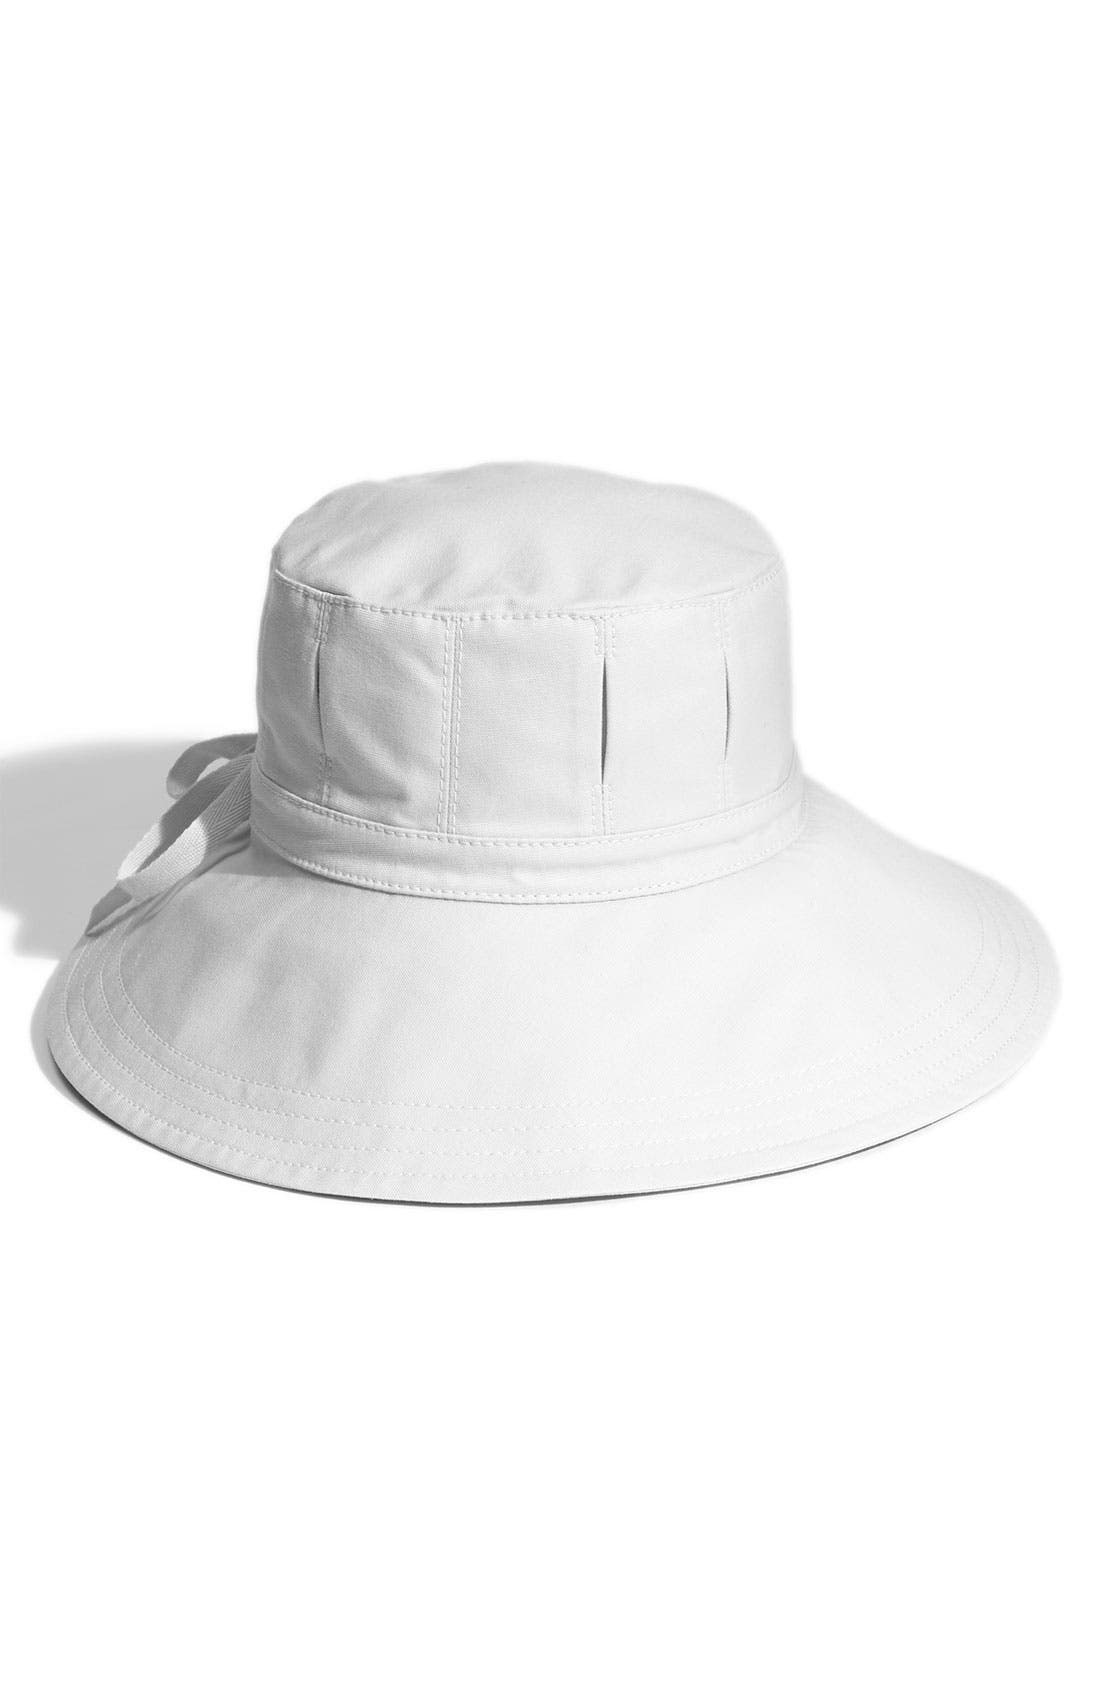 Alternate Image 1 Selected - Helen Kaminski 'Indira' Cotton Canvas Sun Hat